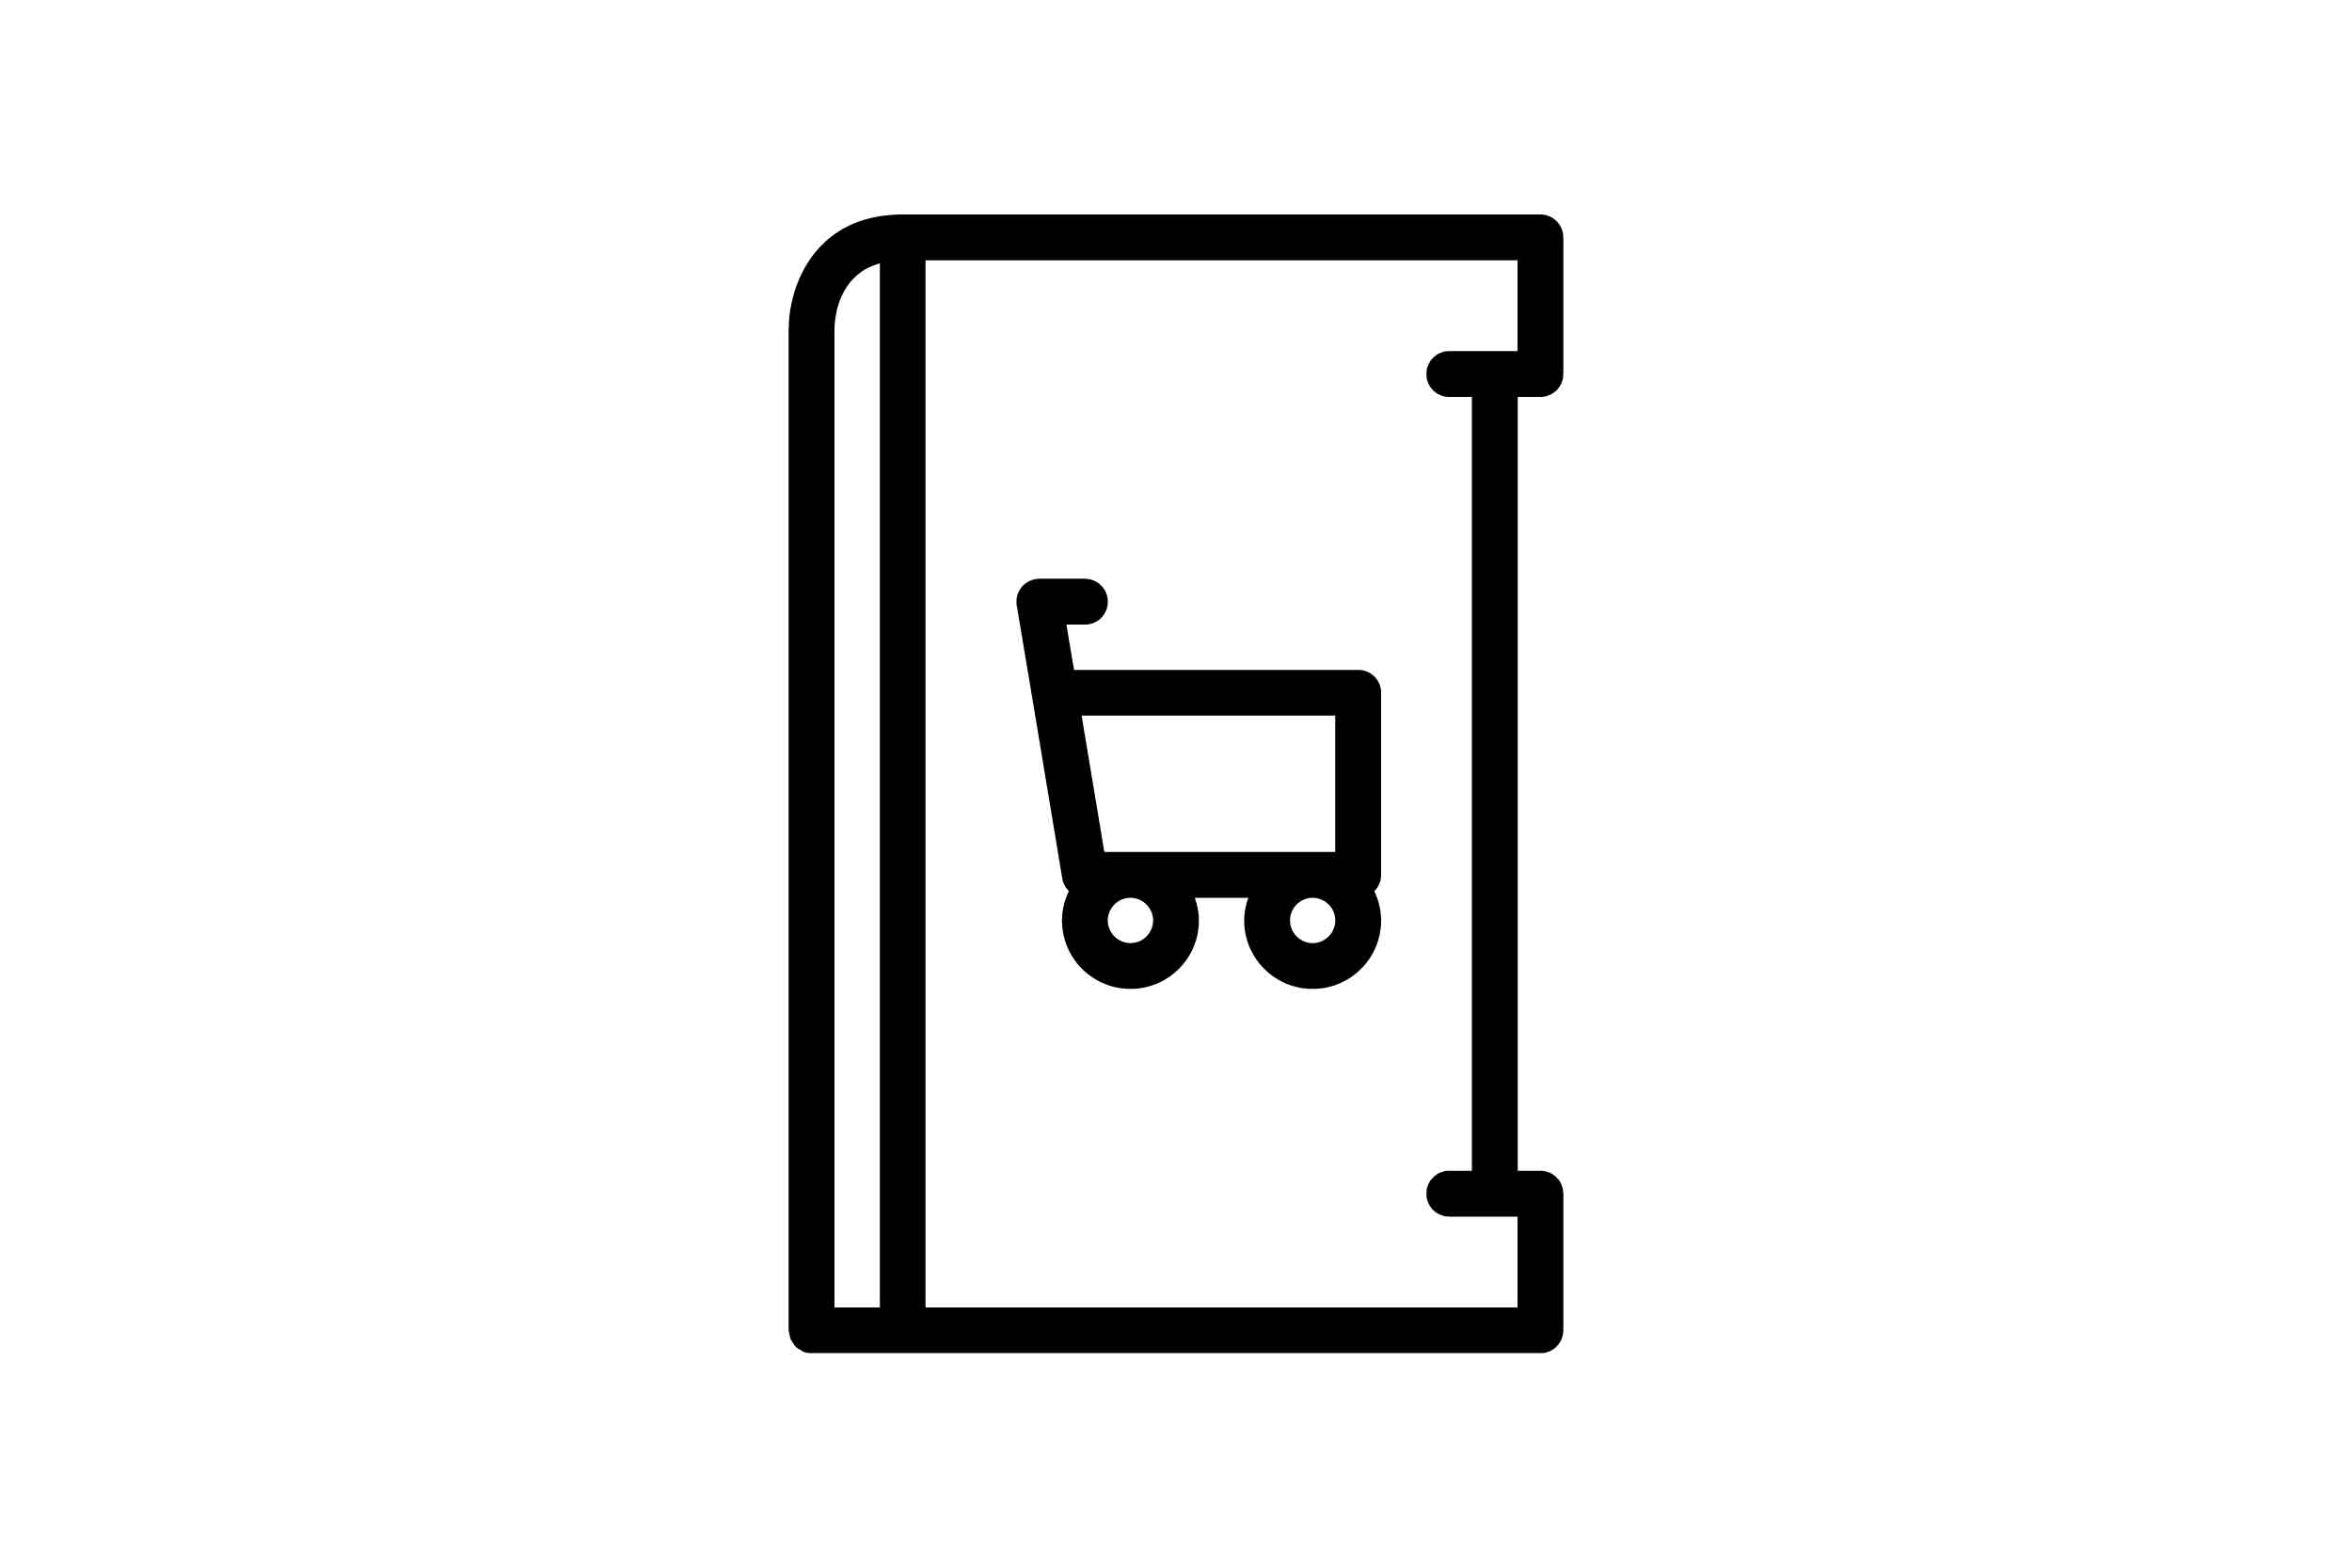 Download Free Cart Black And White Icon Graphic By Glyph Faisalovers for Cricut Explore, Silhouette and other cutting machines.